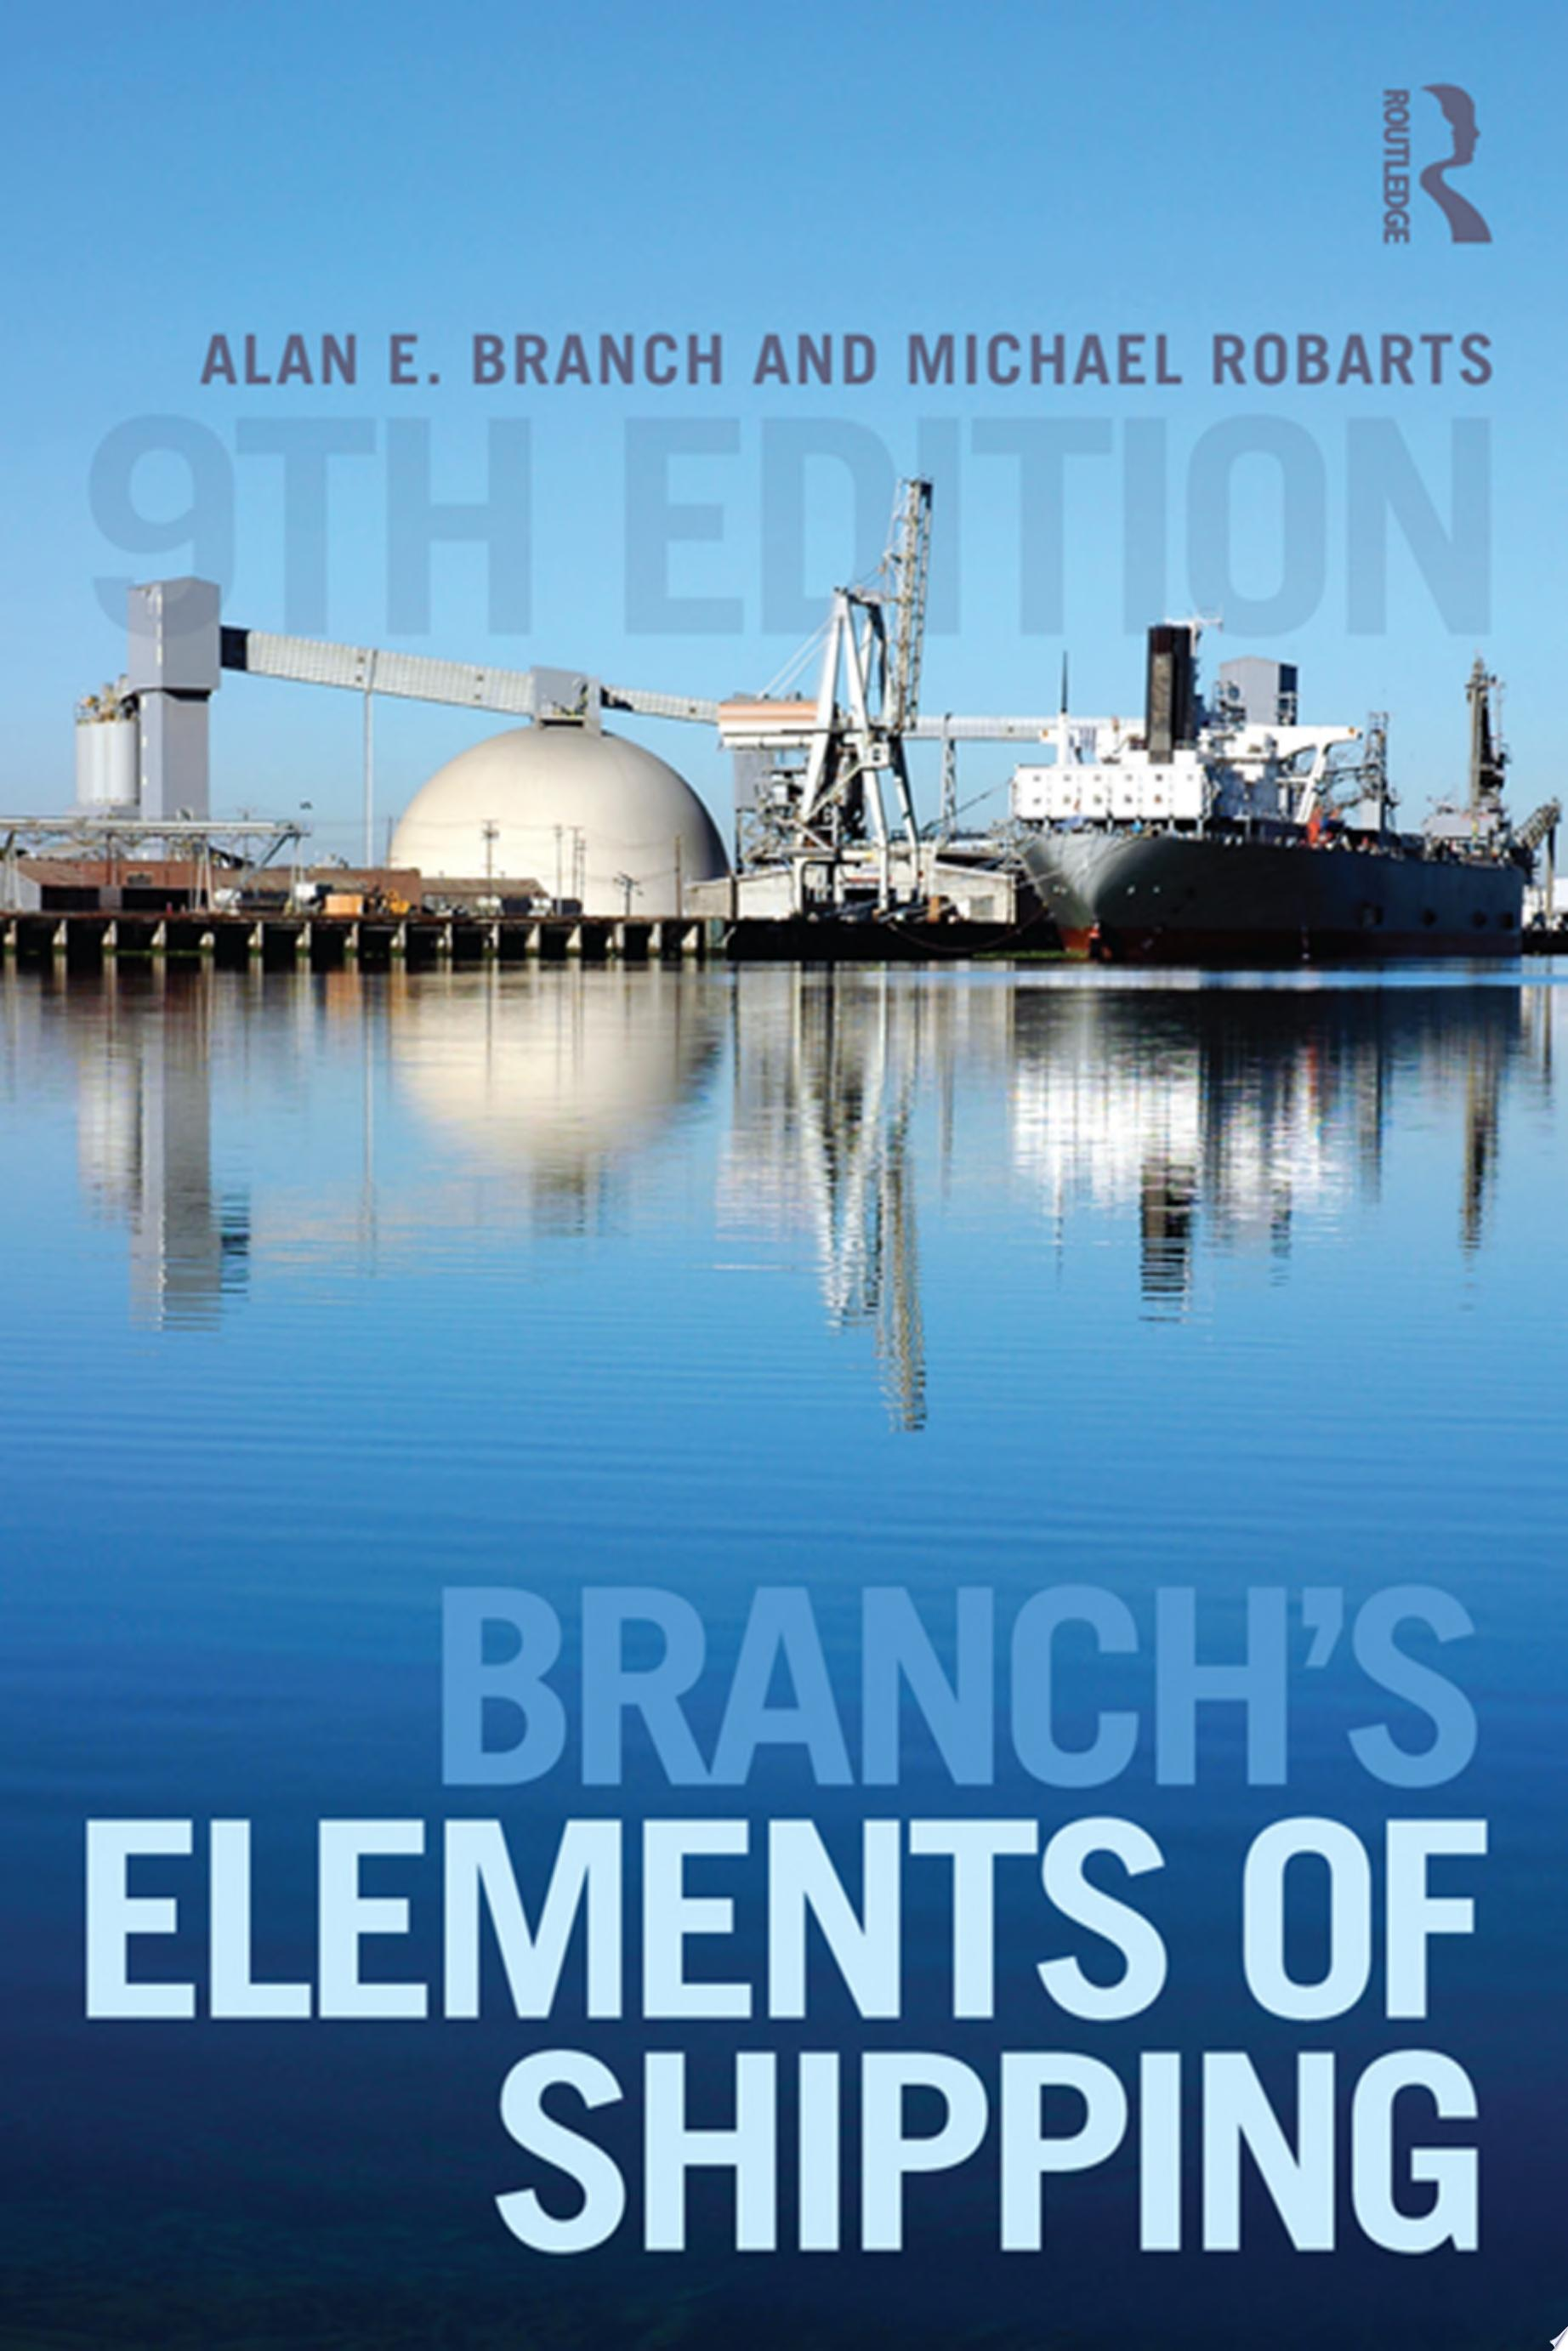 Branch s Elements of Shipping